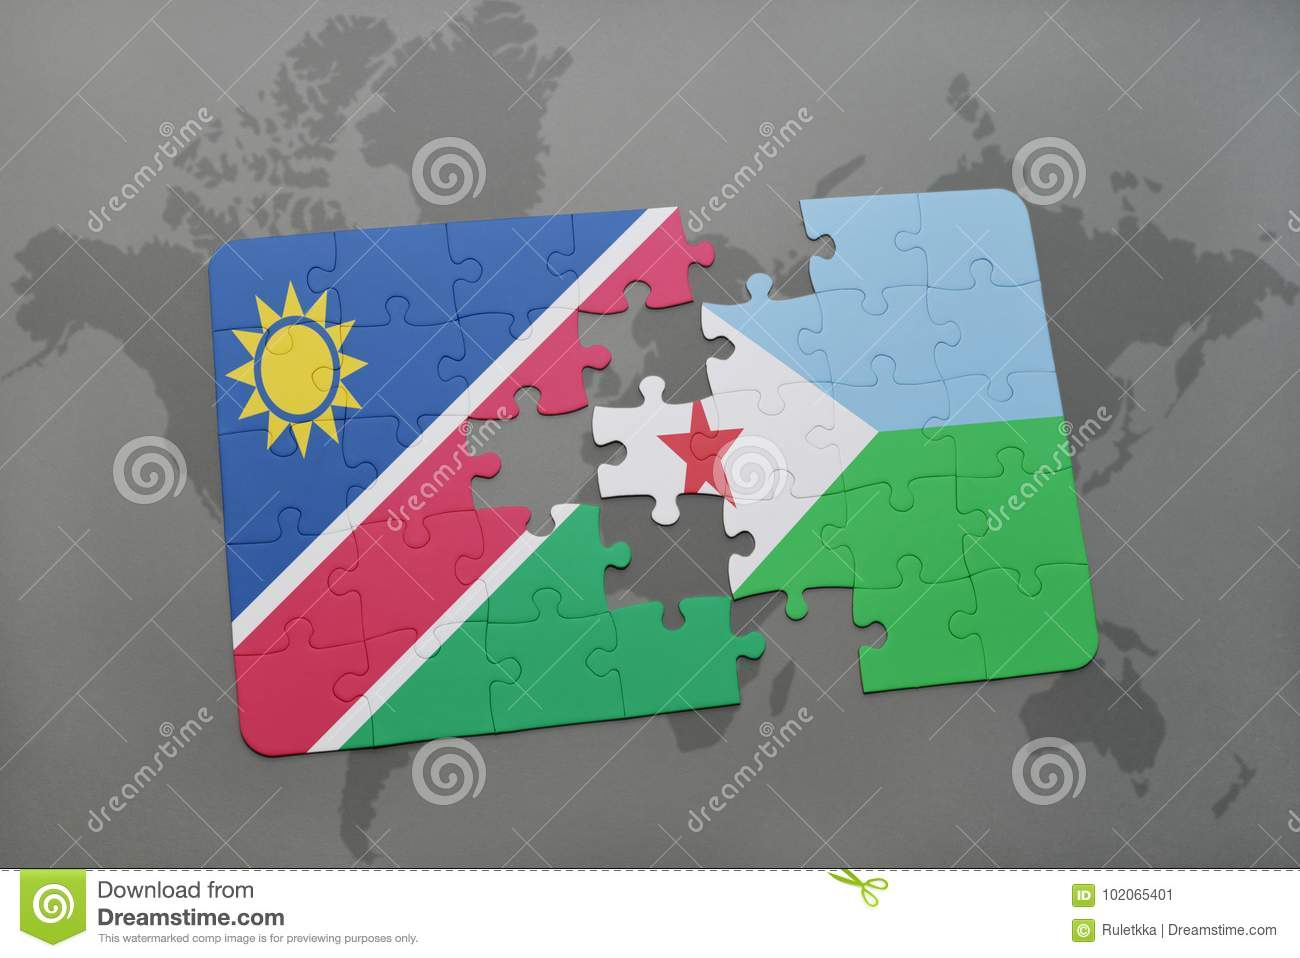 Puzzle with the national flag of namibia and djibouti on a world map download comp gumiabroncs Images